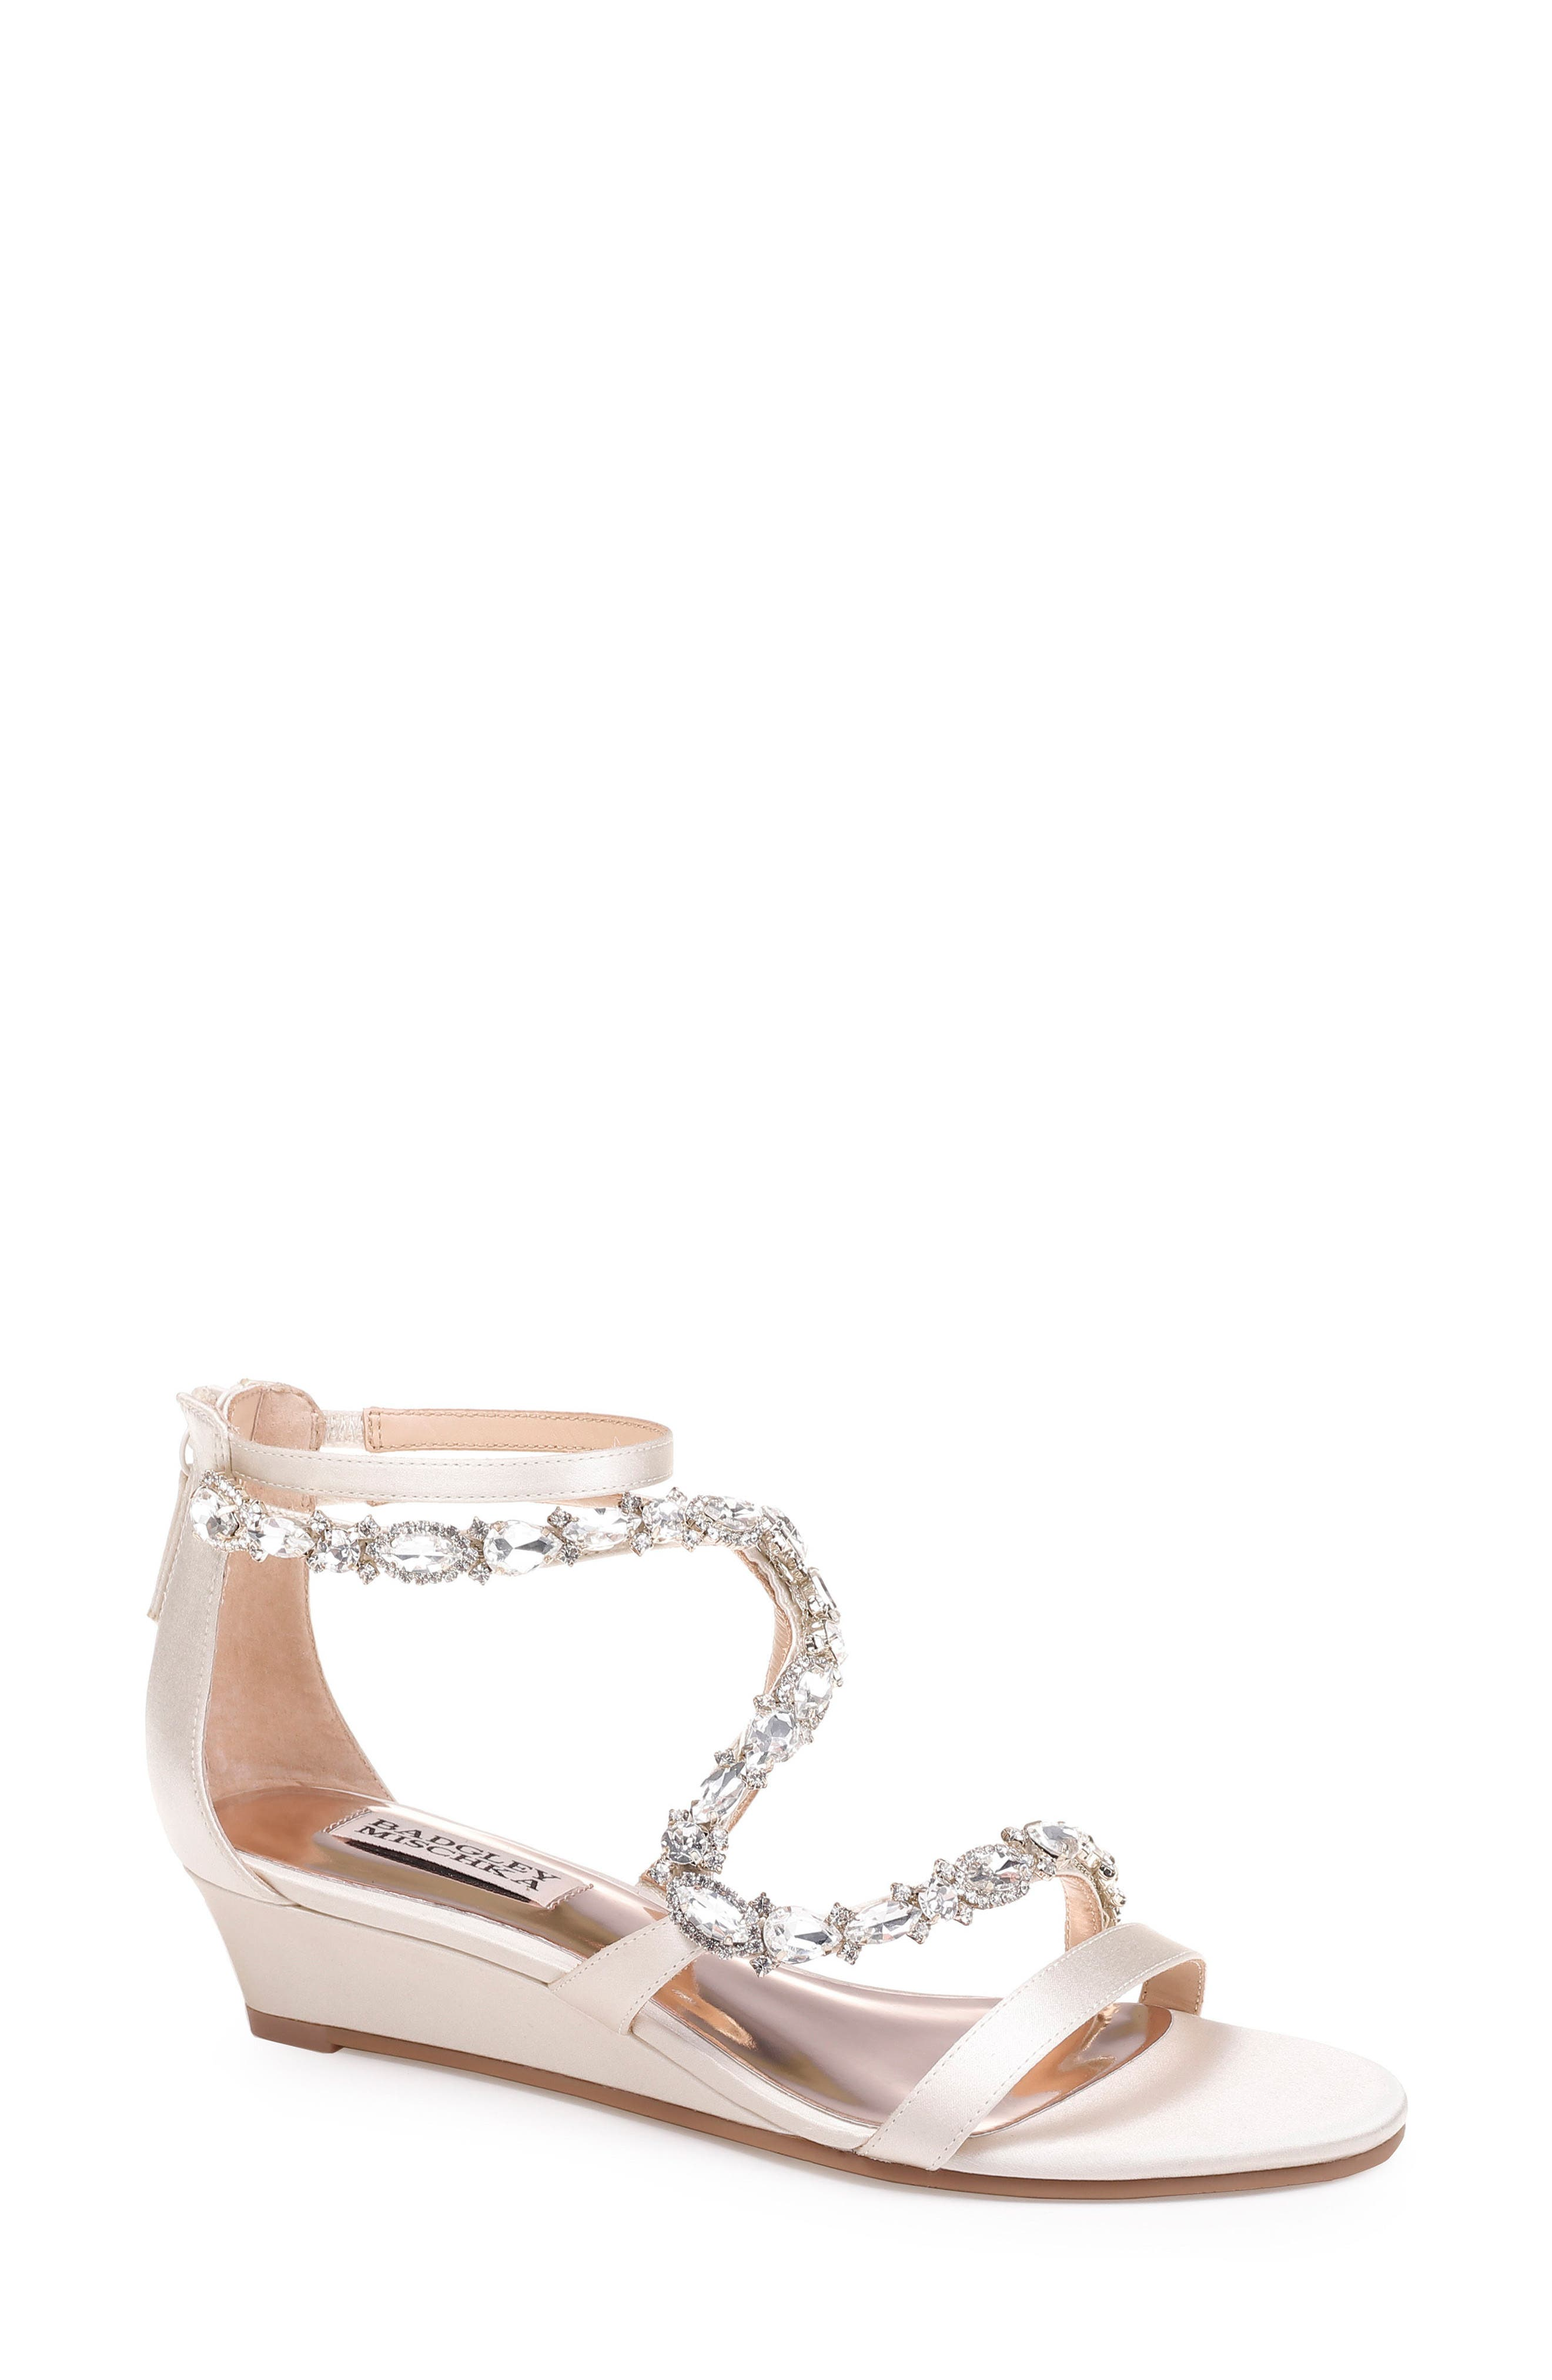 Sierra Strappy Wedge Sandal,                         Main,                         color, IVORY SATIN